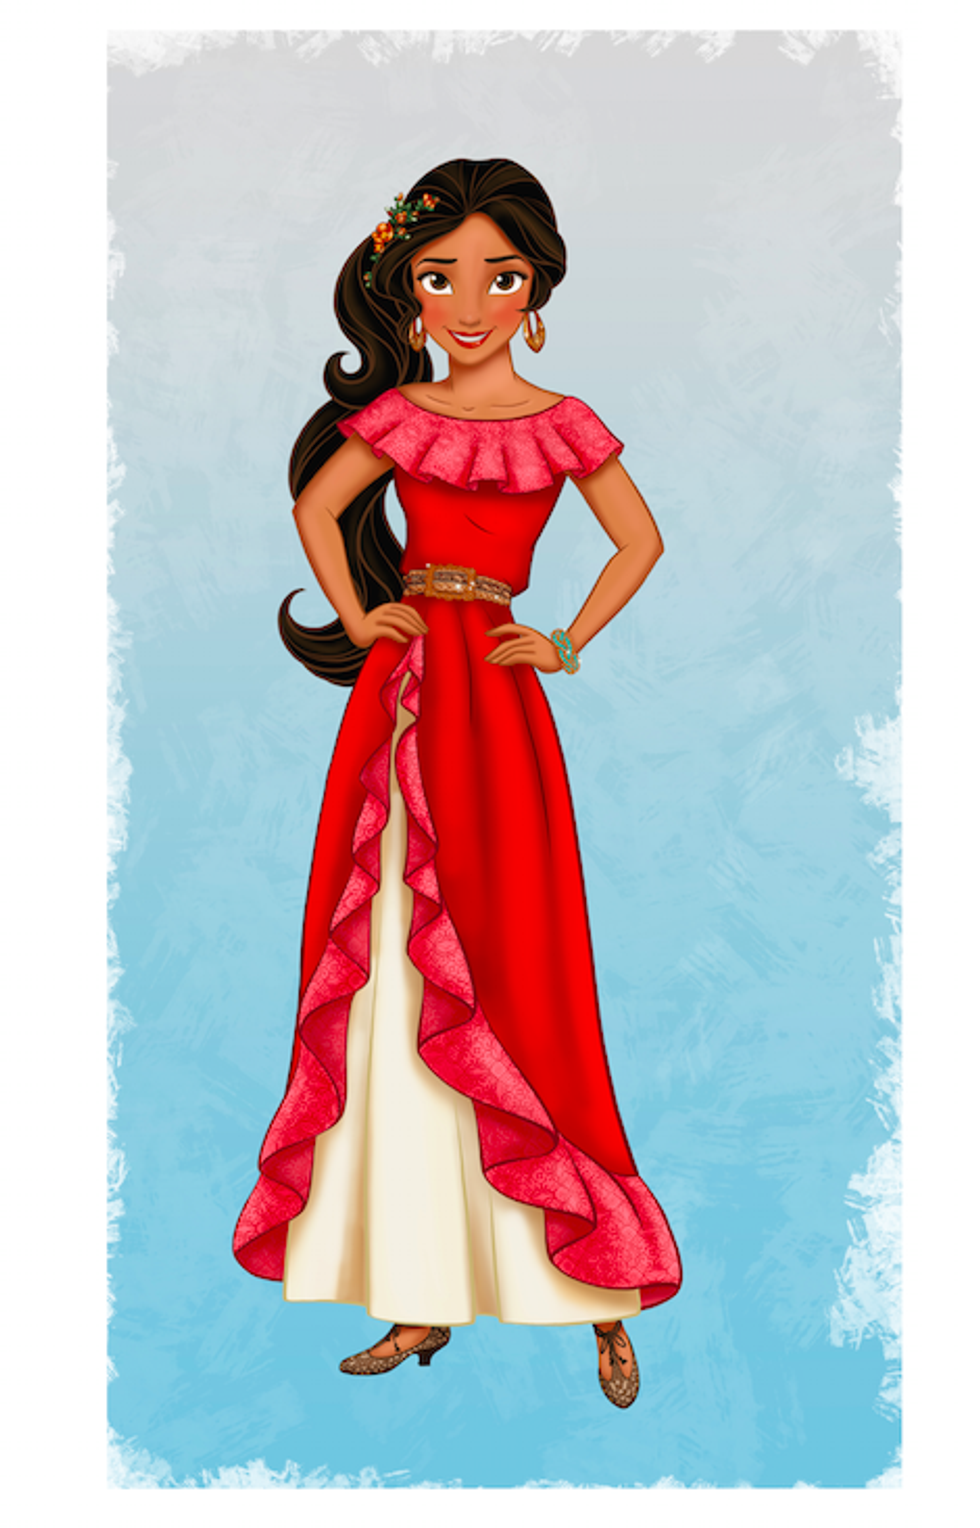 Disney Announces Its First Latina Princess